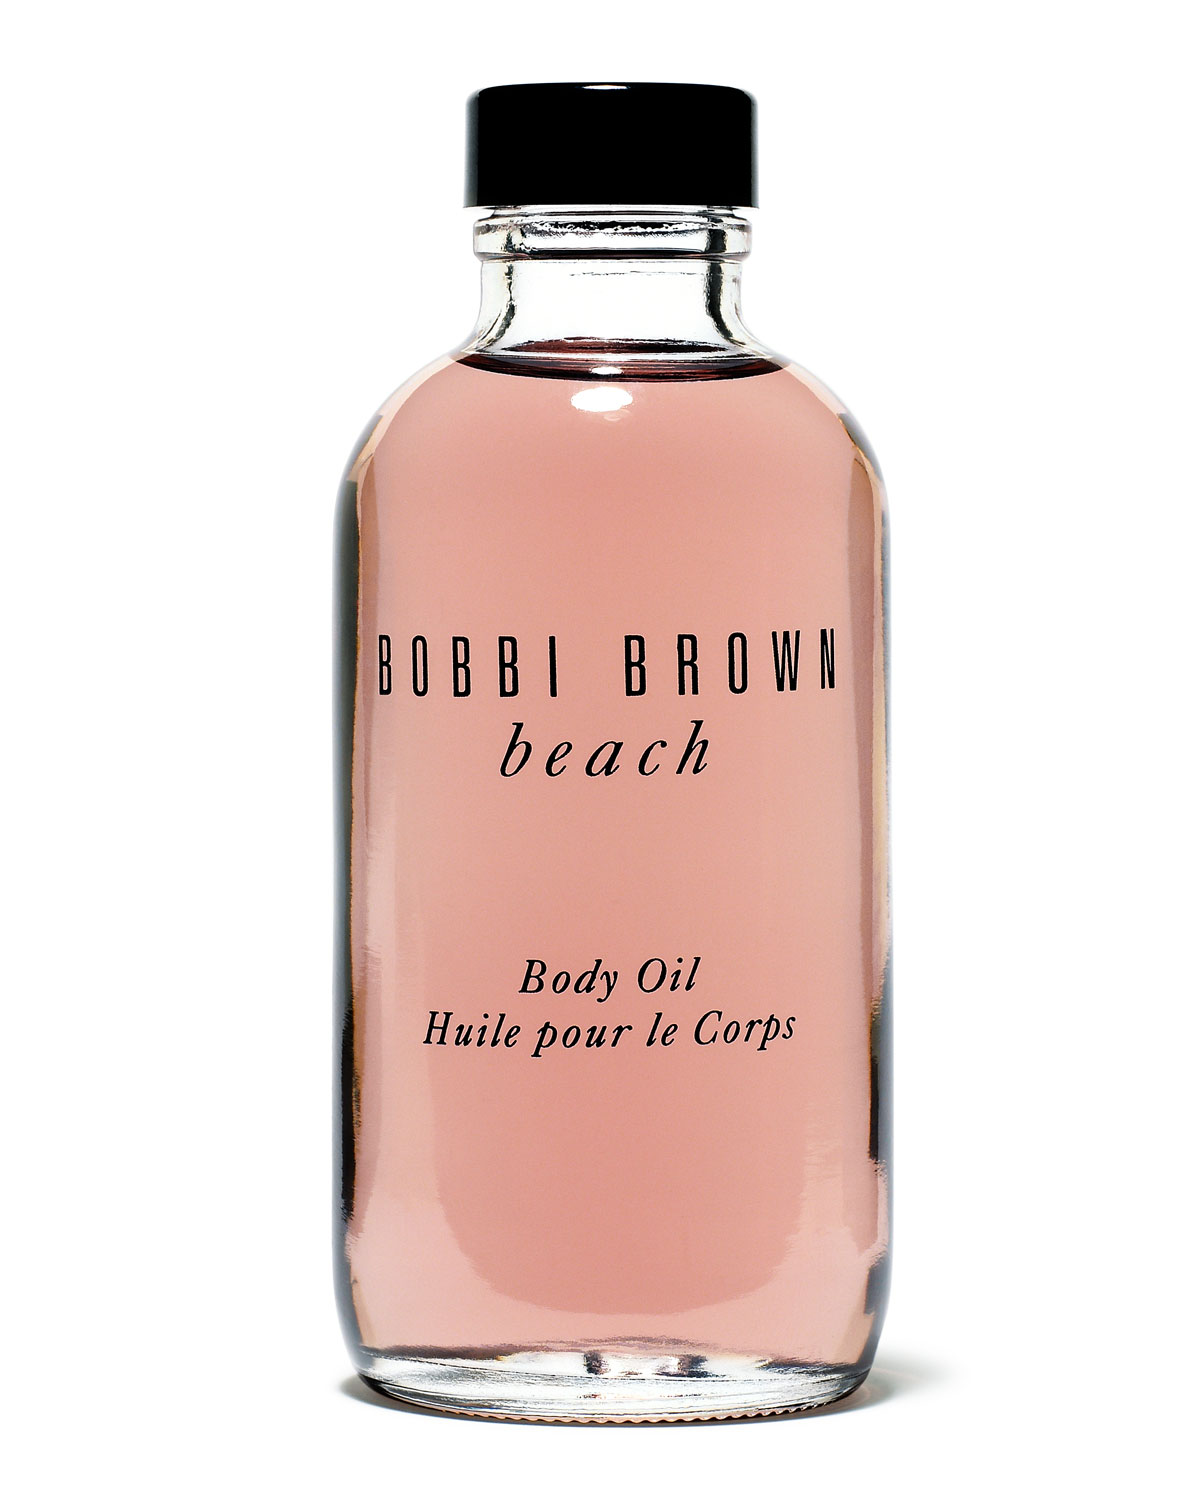 Beach Body Oil - Bobbi Brown